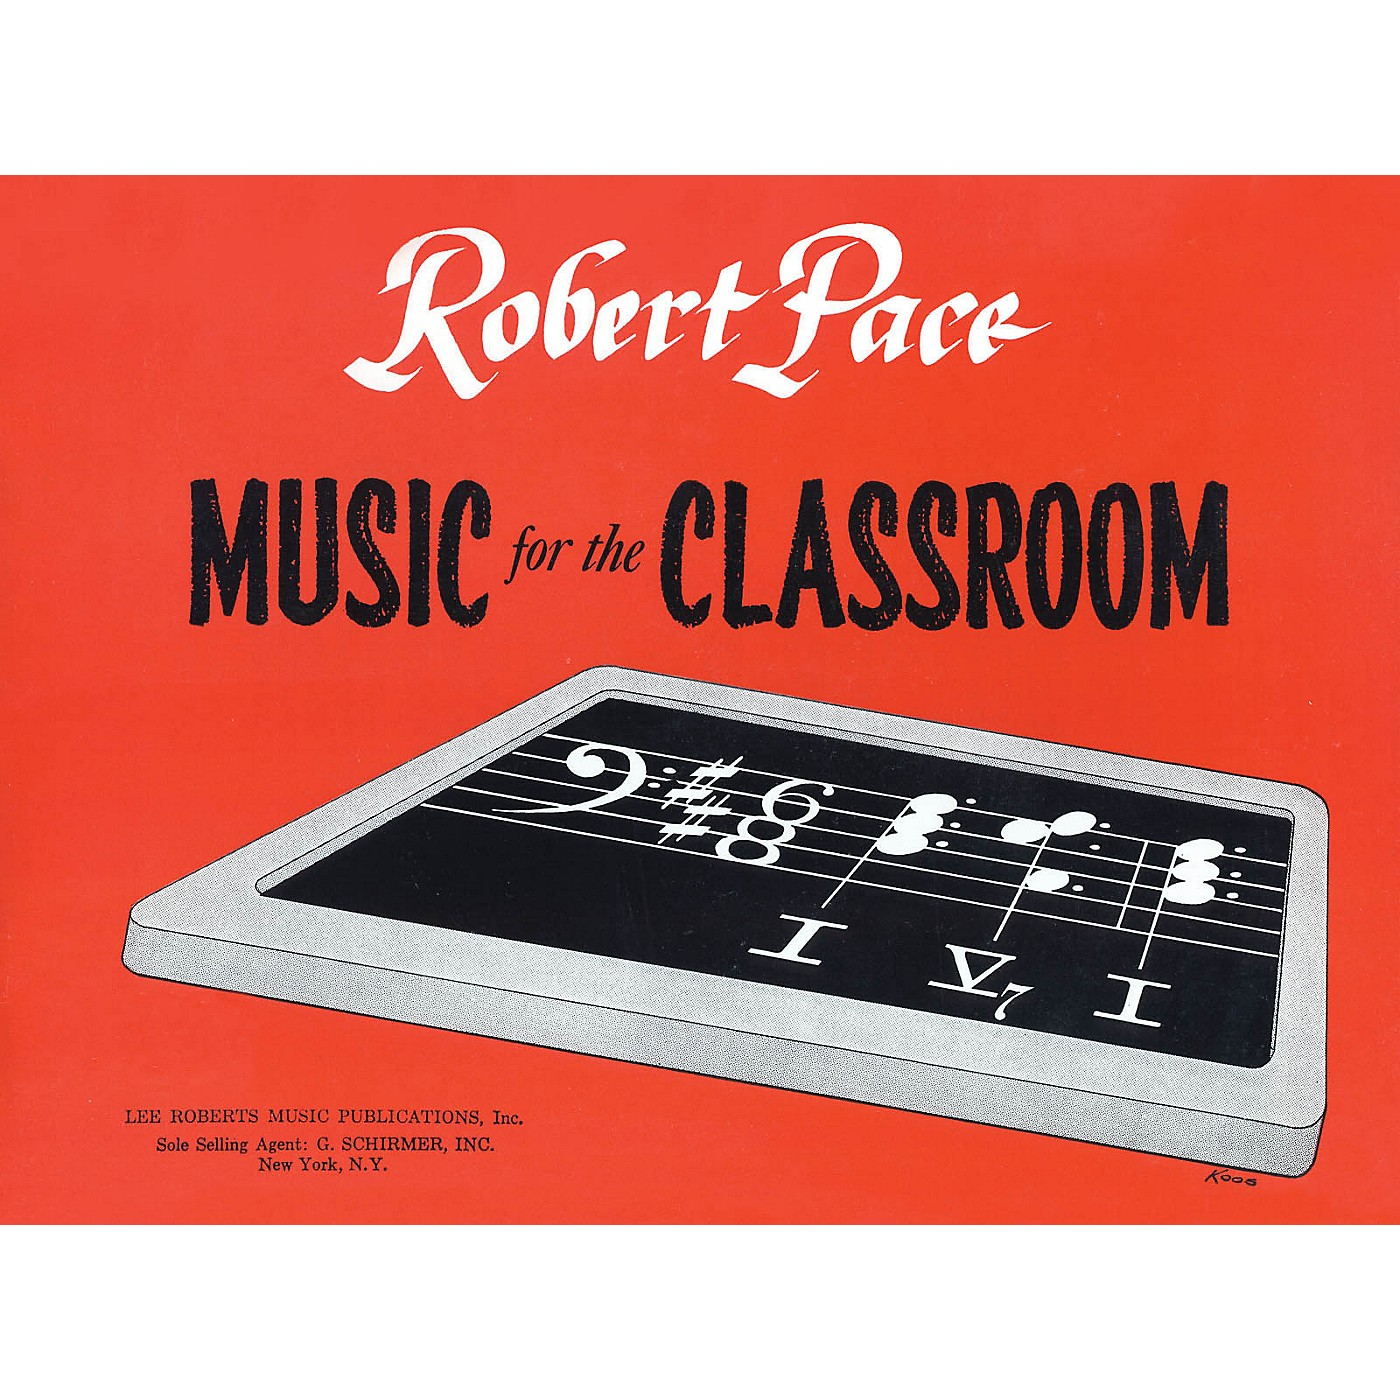 Lee Roberts Music for the Classroom (Child's Book) Pace Piano Education Series Softcover Written by Robert Pace thumbnail